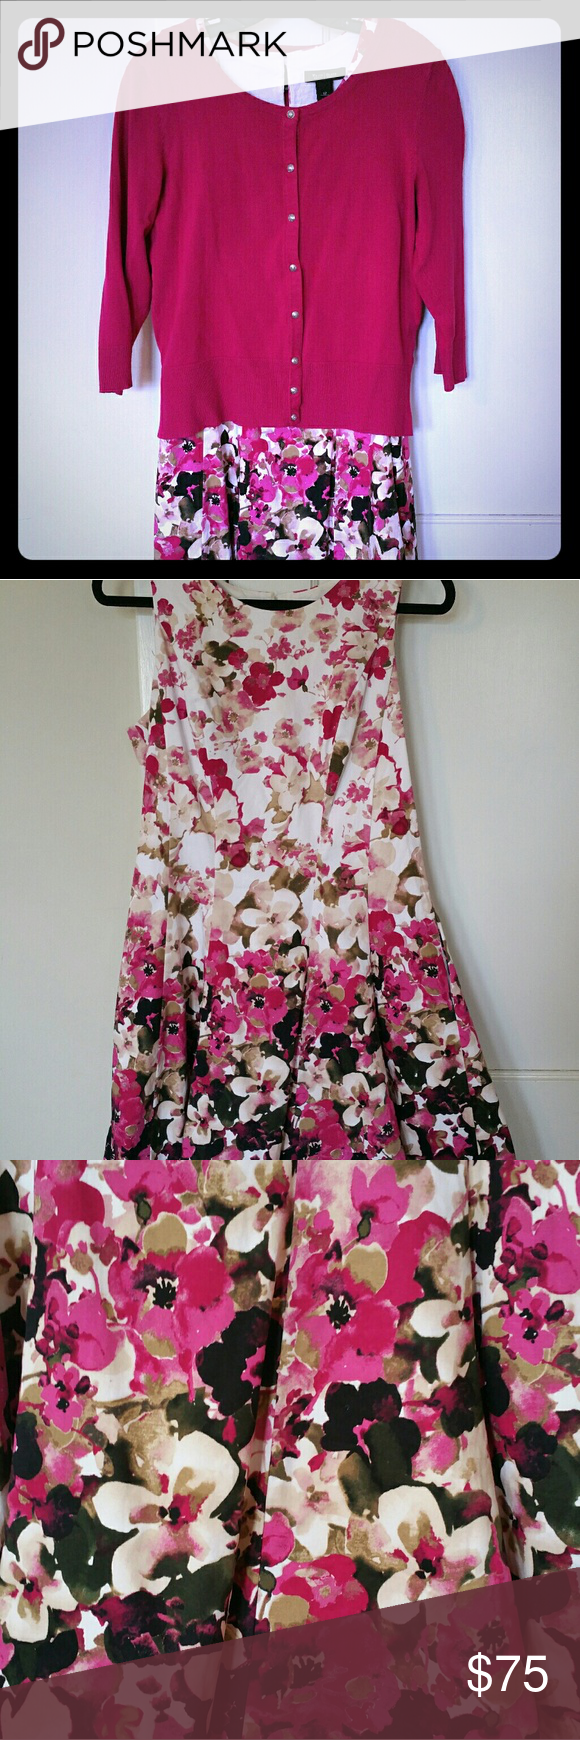 3 pc Sleeveless WHBM Dress, Cardigan & Belt Set This is gorgeous! Never worn. Dress is sleeveless & is a size 12, cardigan is size L. Flower belt has stretch adjustable back. Perfect for Spring! You will look like a million bucks! Pet friendly home. White House Black Market Dresses